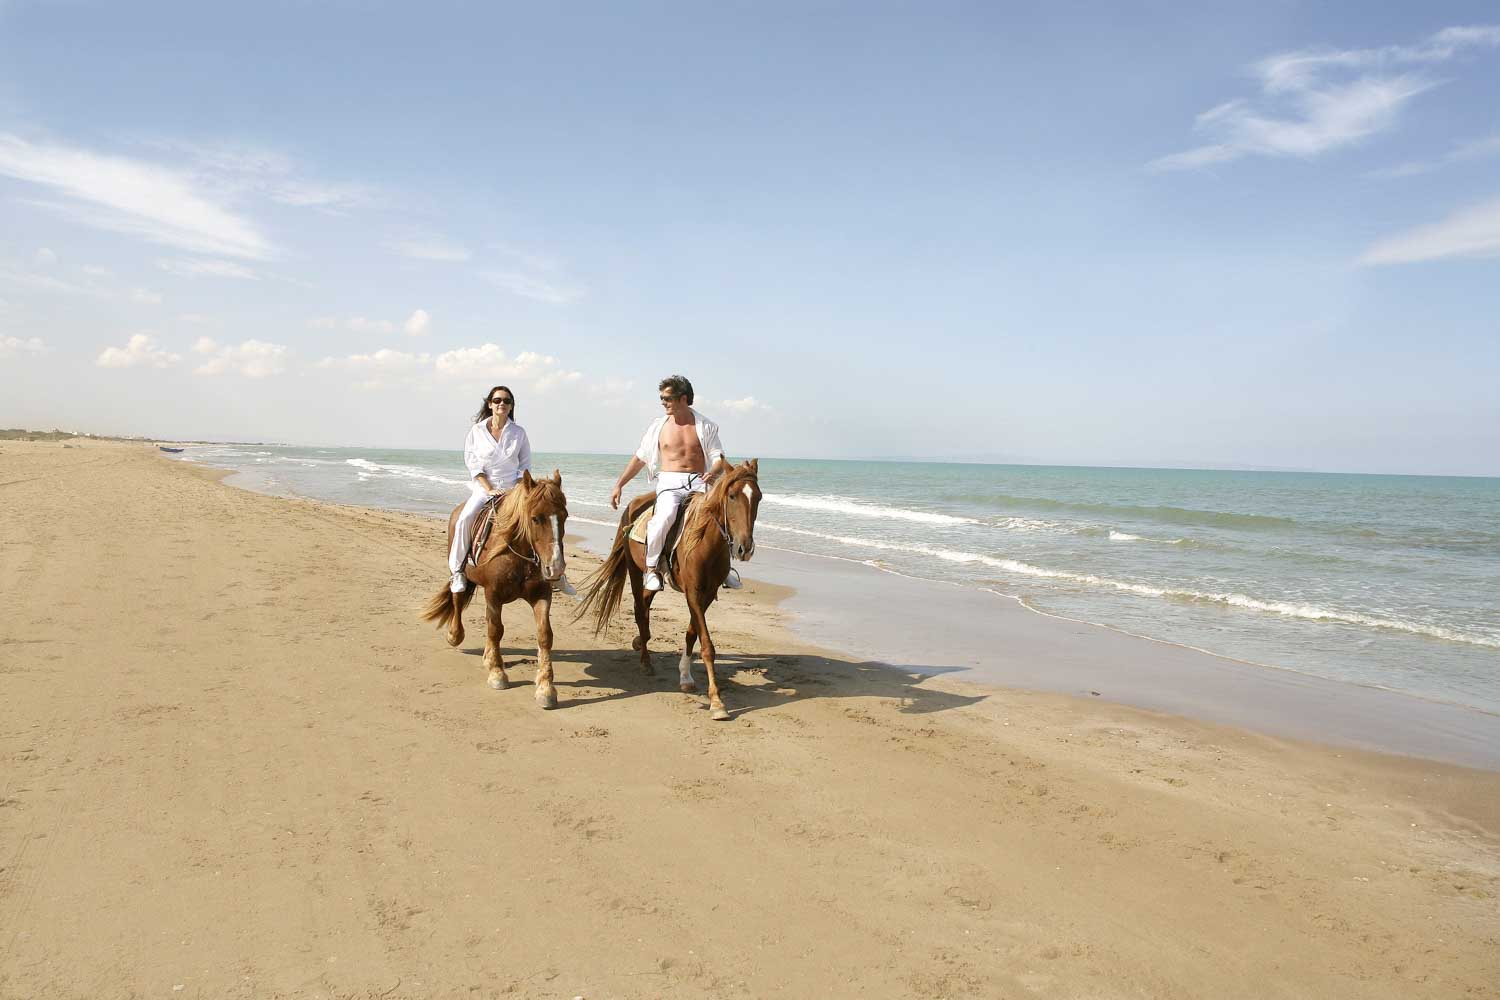 Gammarth Riding Horses on the Beach